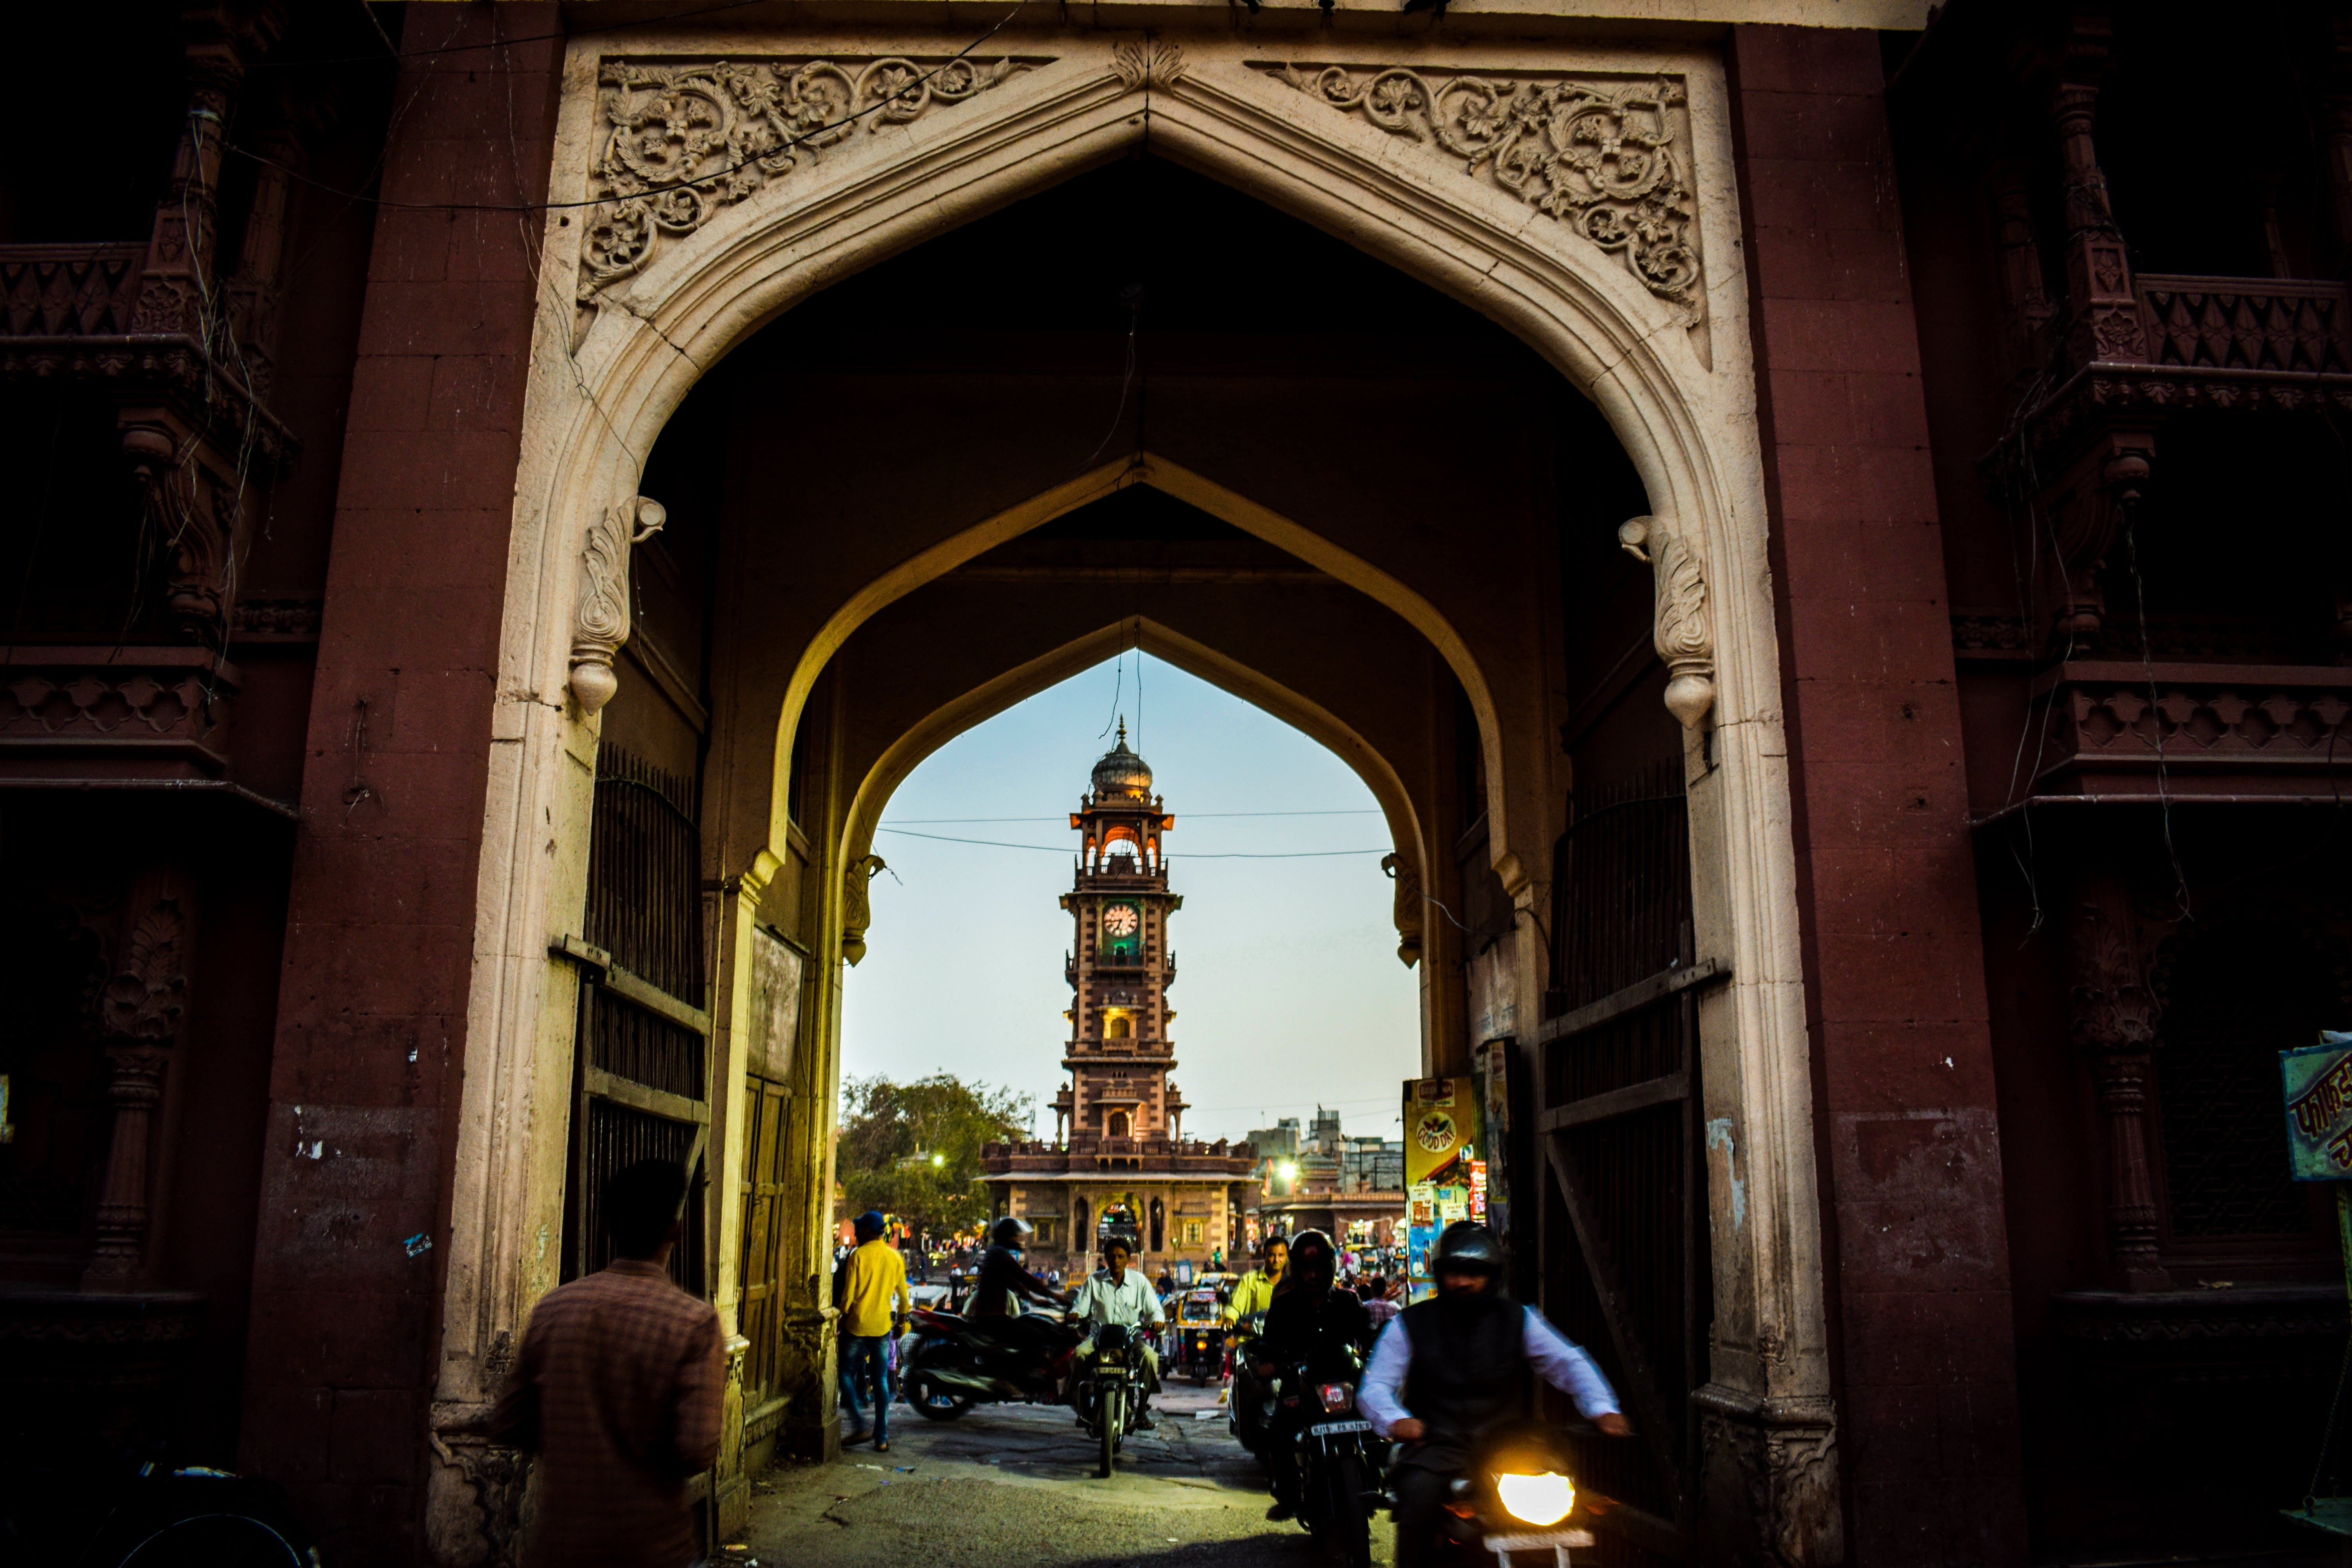 Free stock photo of bell tower, clock tower, crowd, india